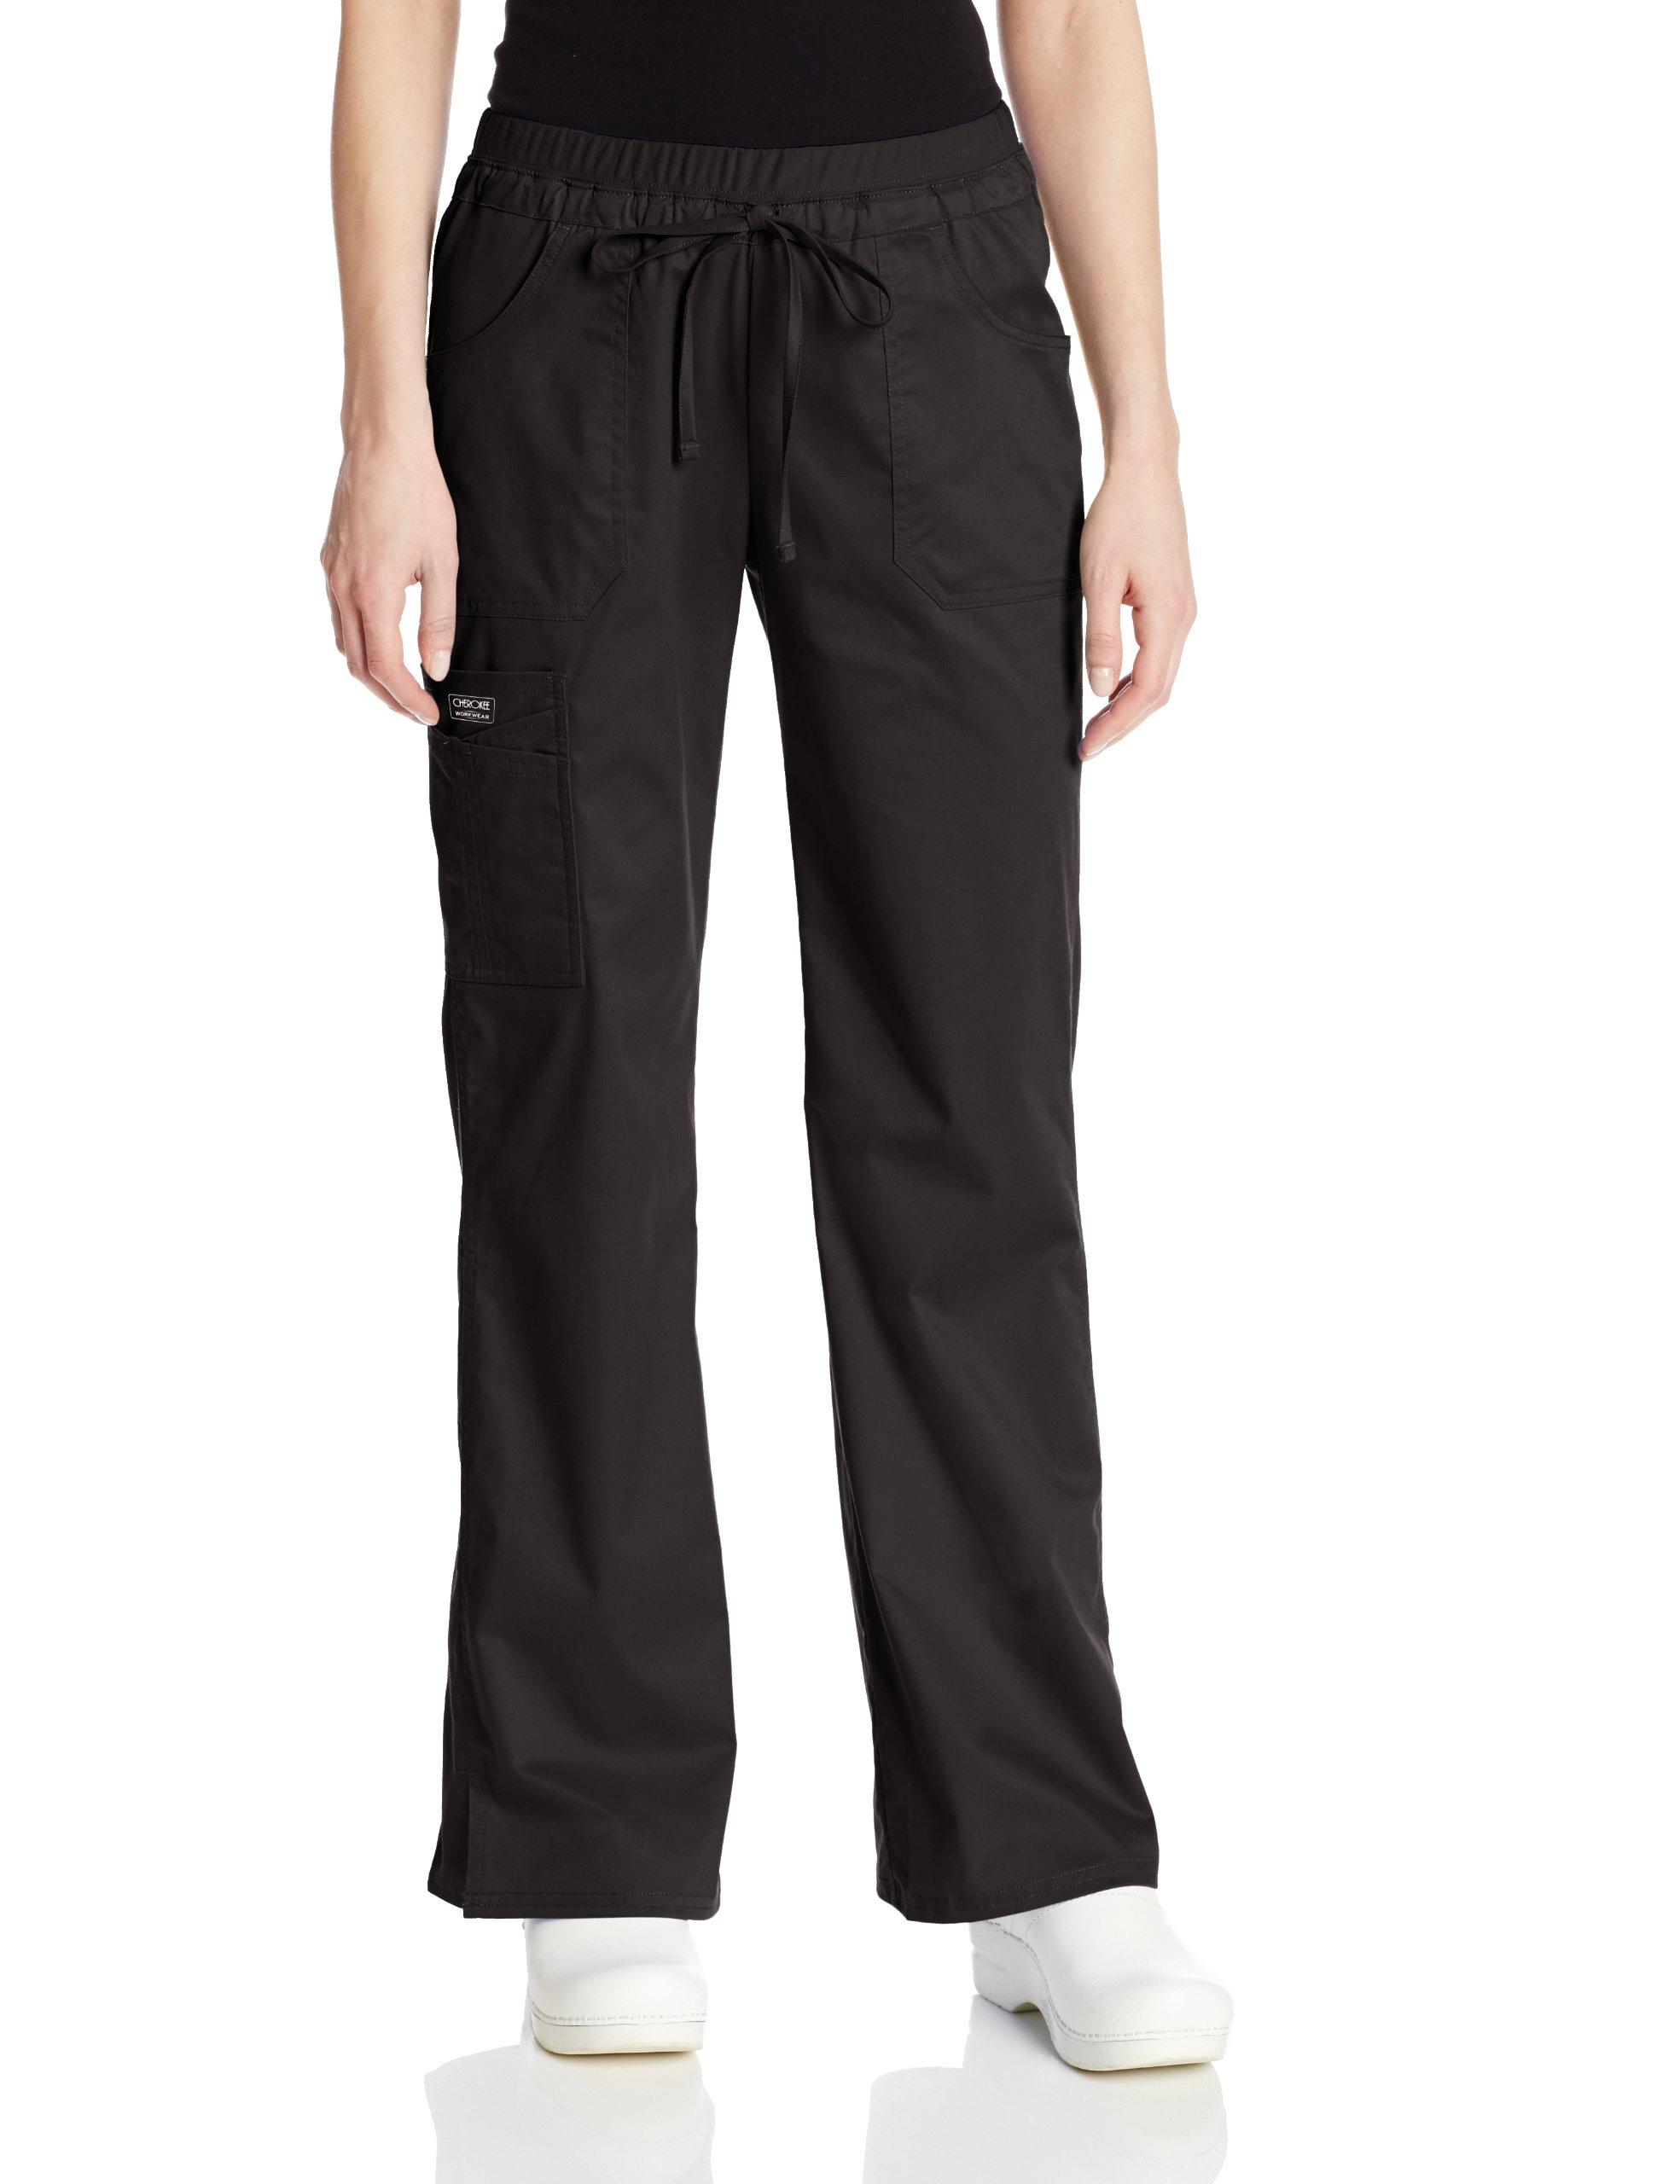 Cherokee Women's Workwear Scrubs Core Stretch Jr. Fit Low-Rise Cargo Pant, Black, Small by Cherokee